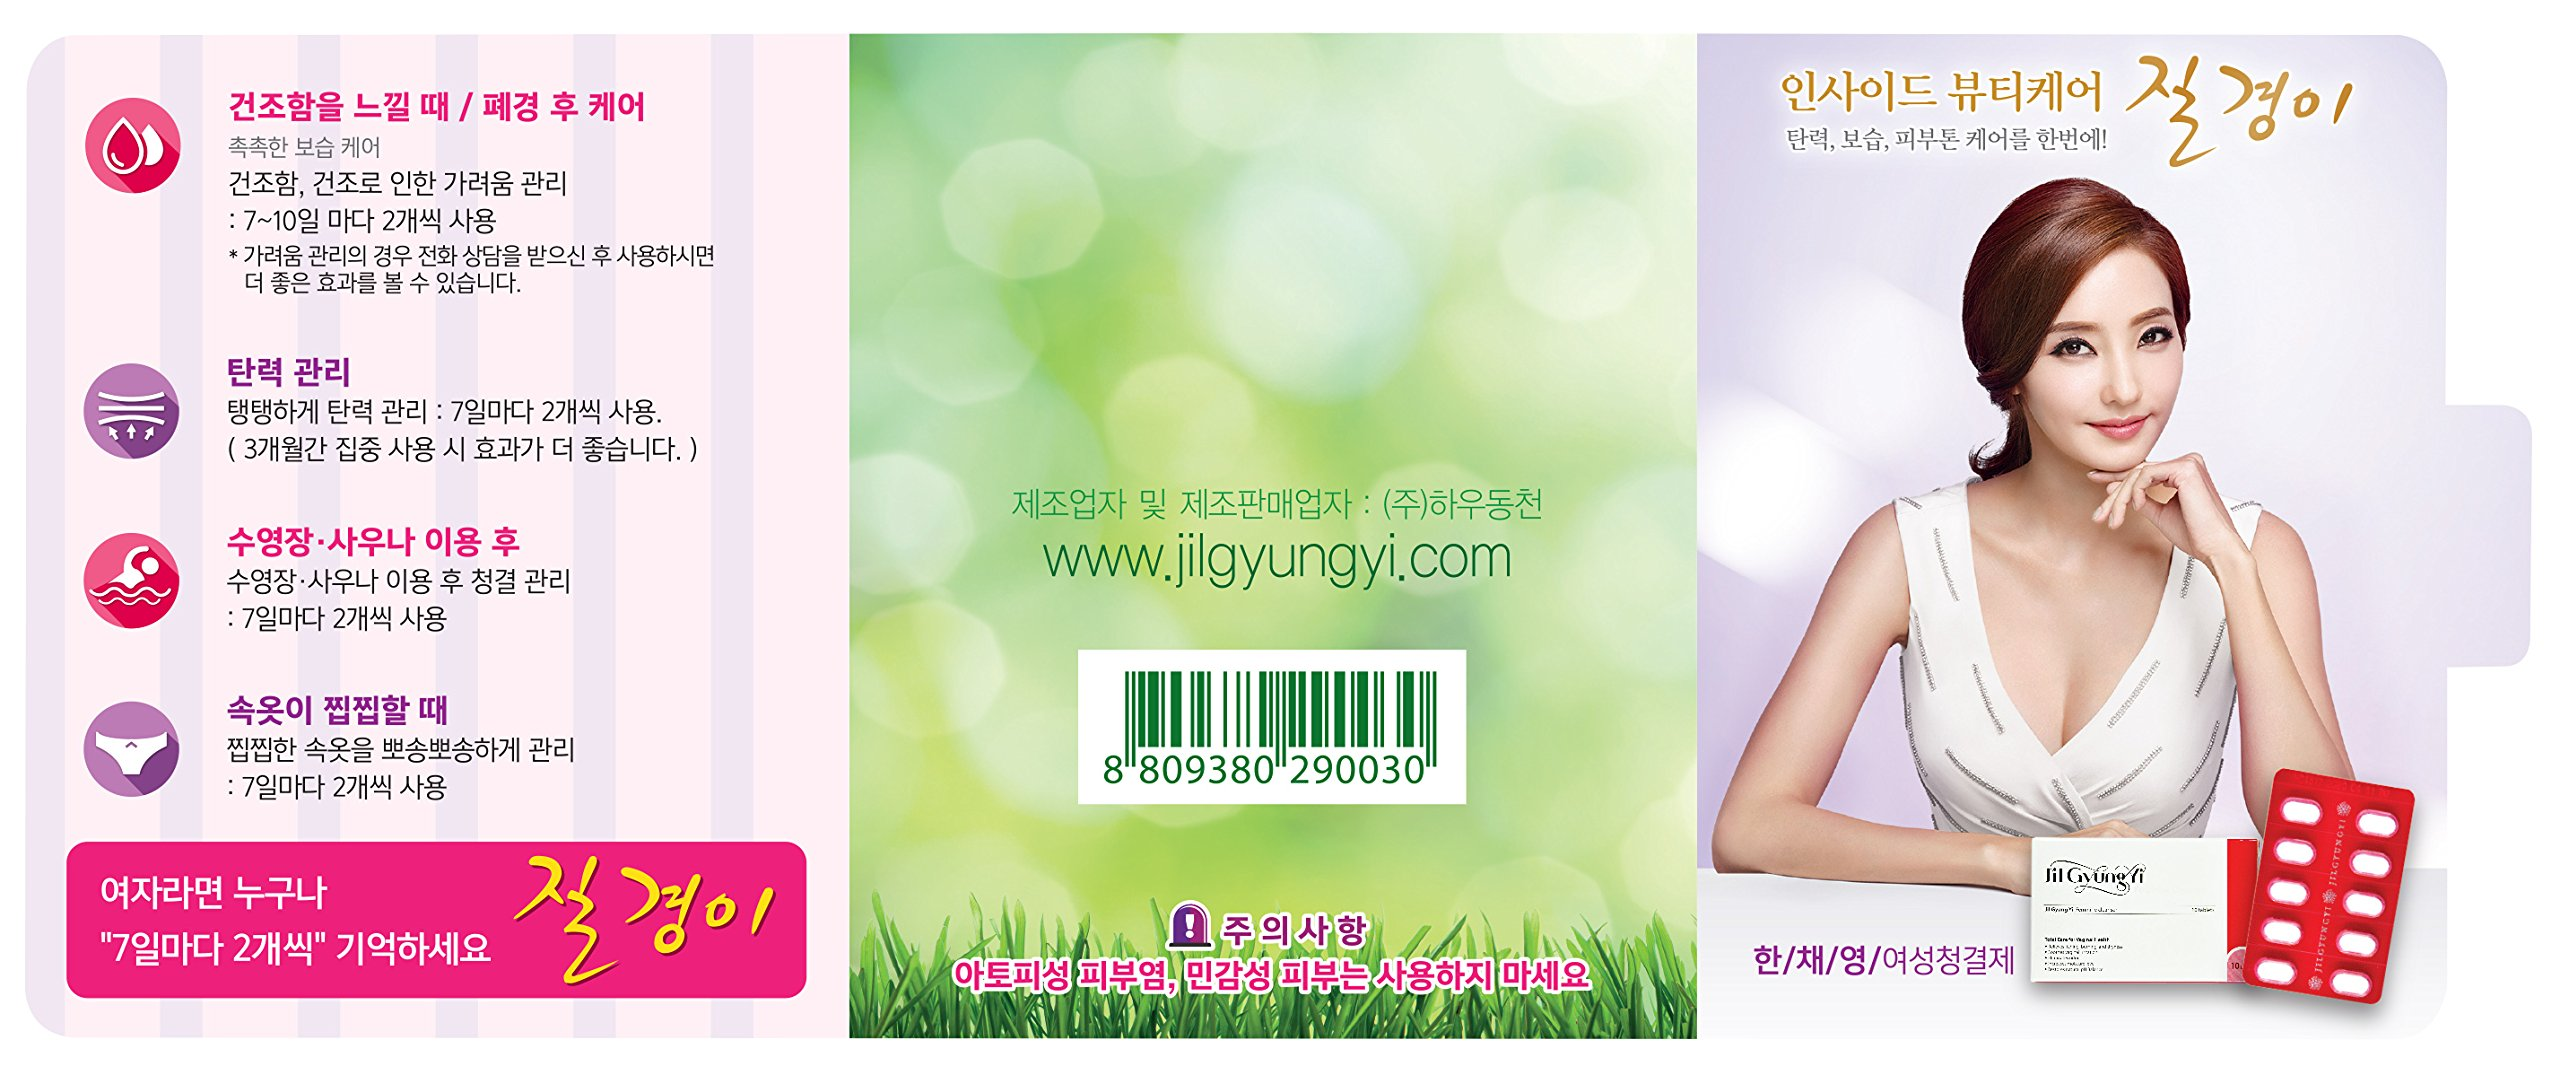 JilGyungYi Natural Vaginal Suppositories - Feminine Intimate Health Total Solution - Moisturizing, Tightening, Odor Treatment, Brightening, Dryness & Itching Relief [Trial Kit] by JilGyungYi (Image #4)